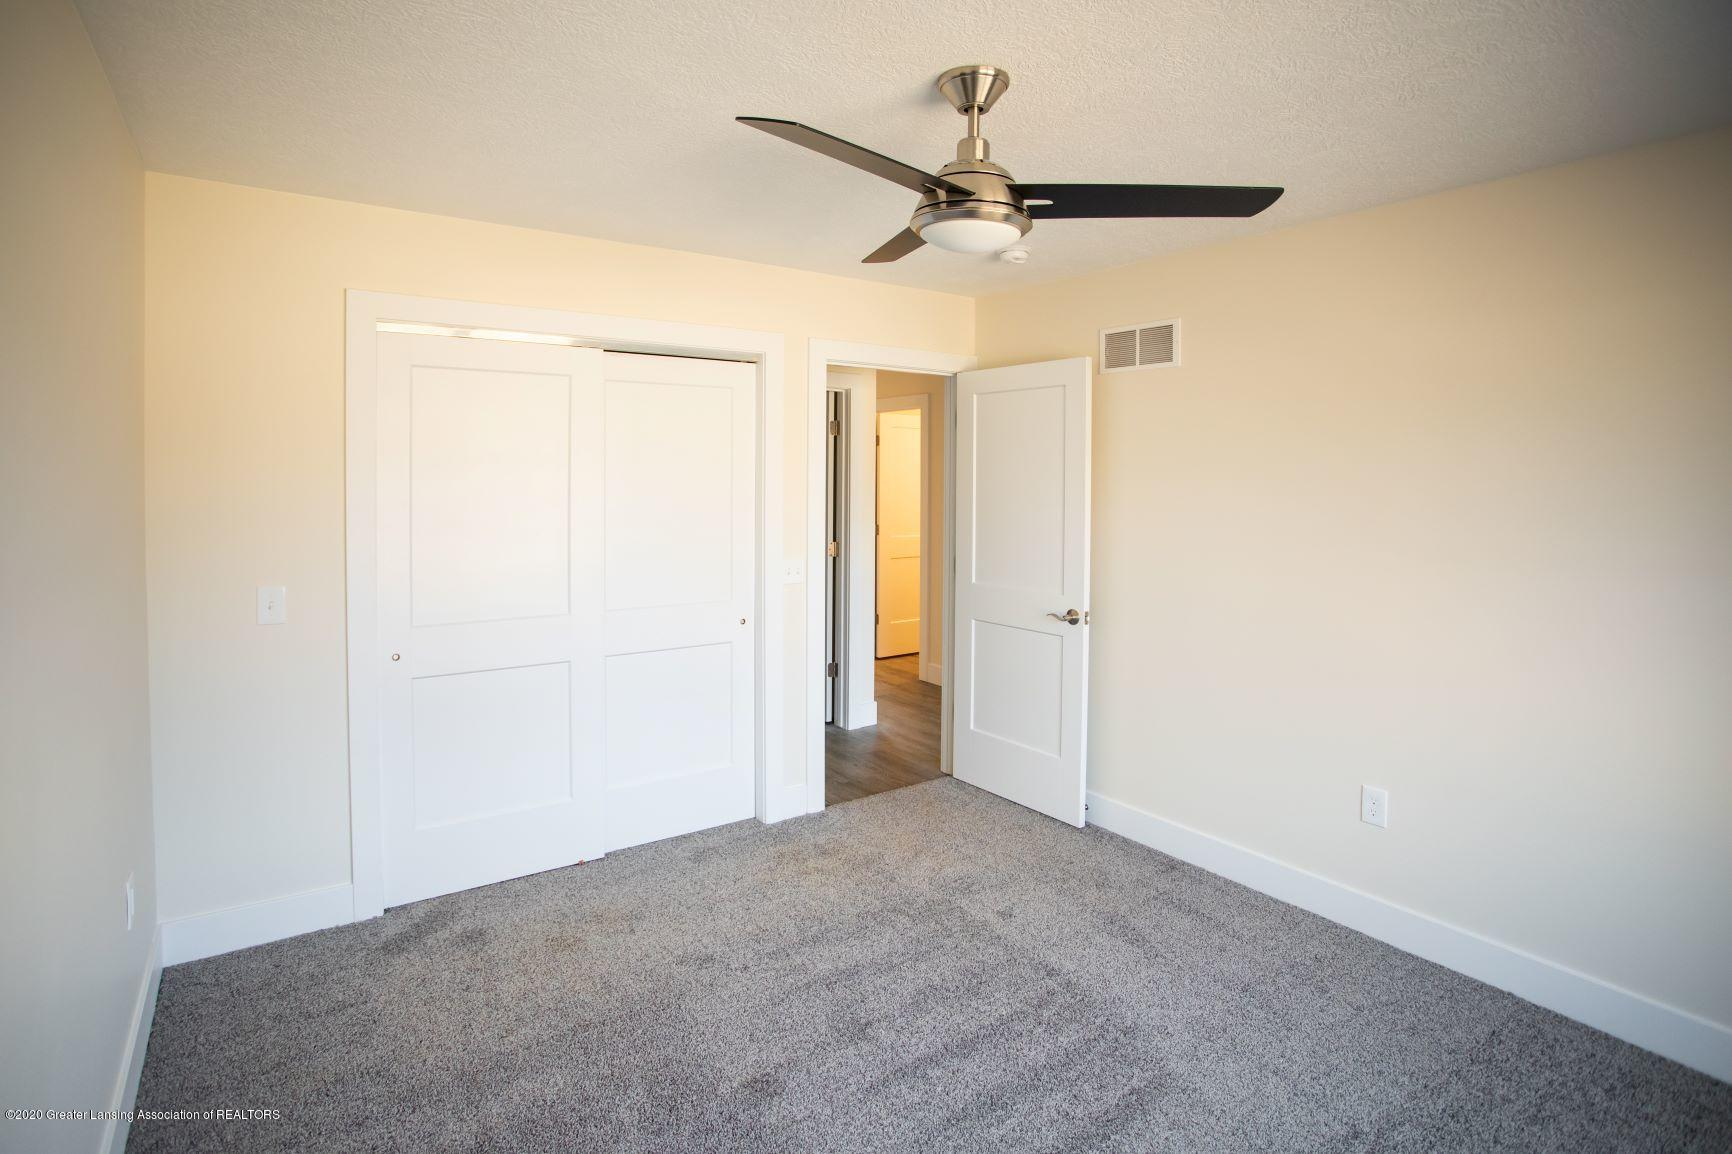 414 Haven St 2 - GB3A8037200313041330035 - 23